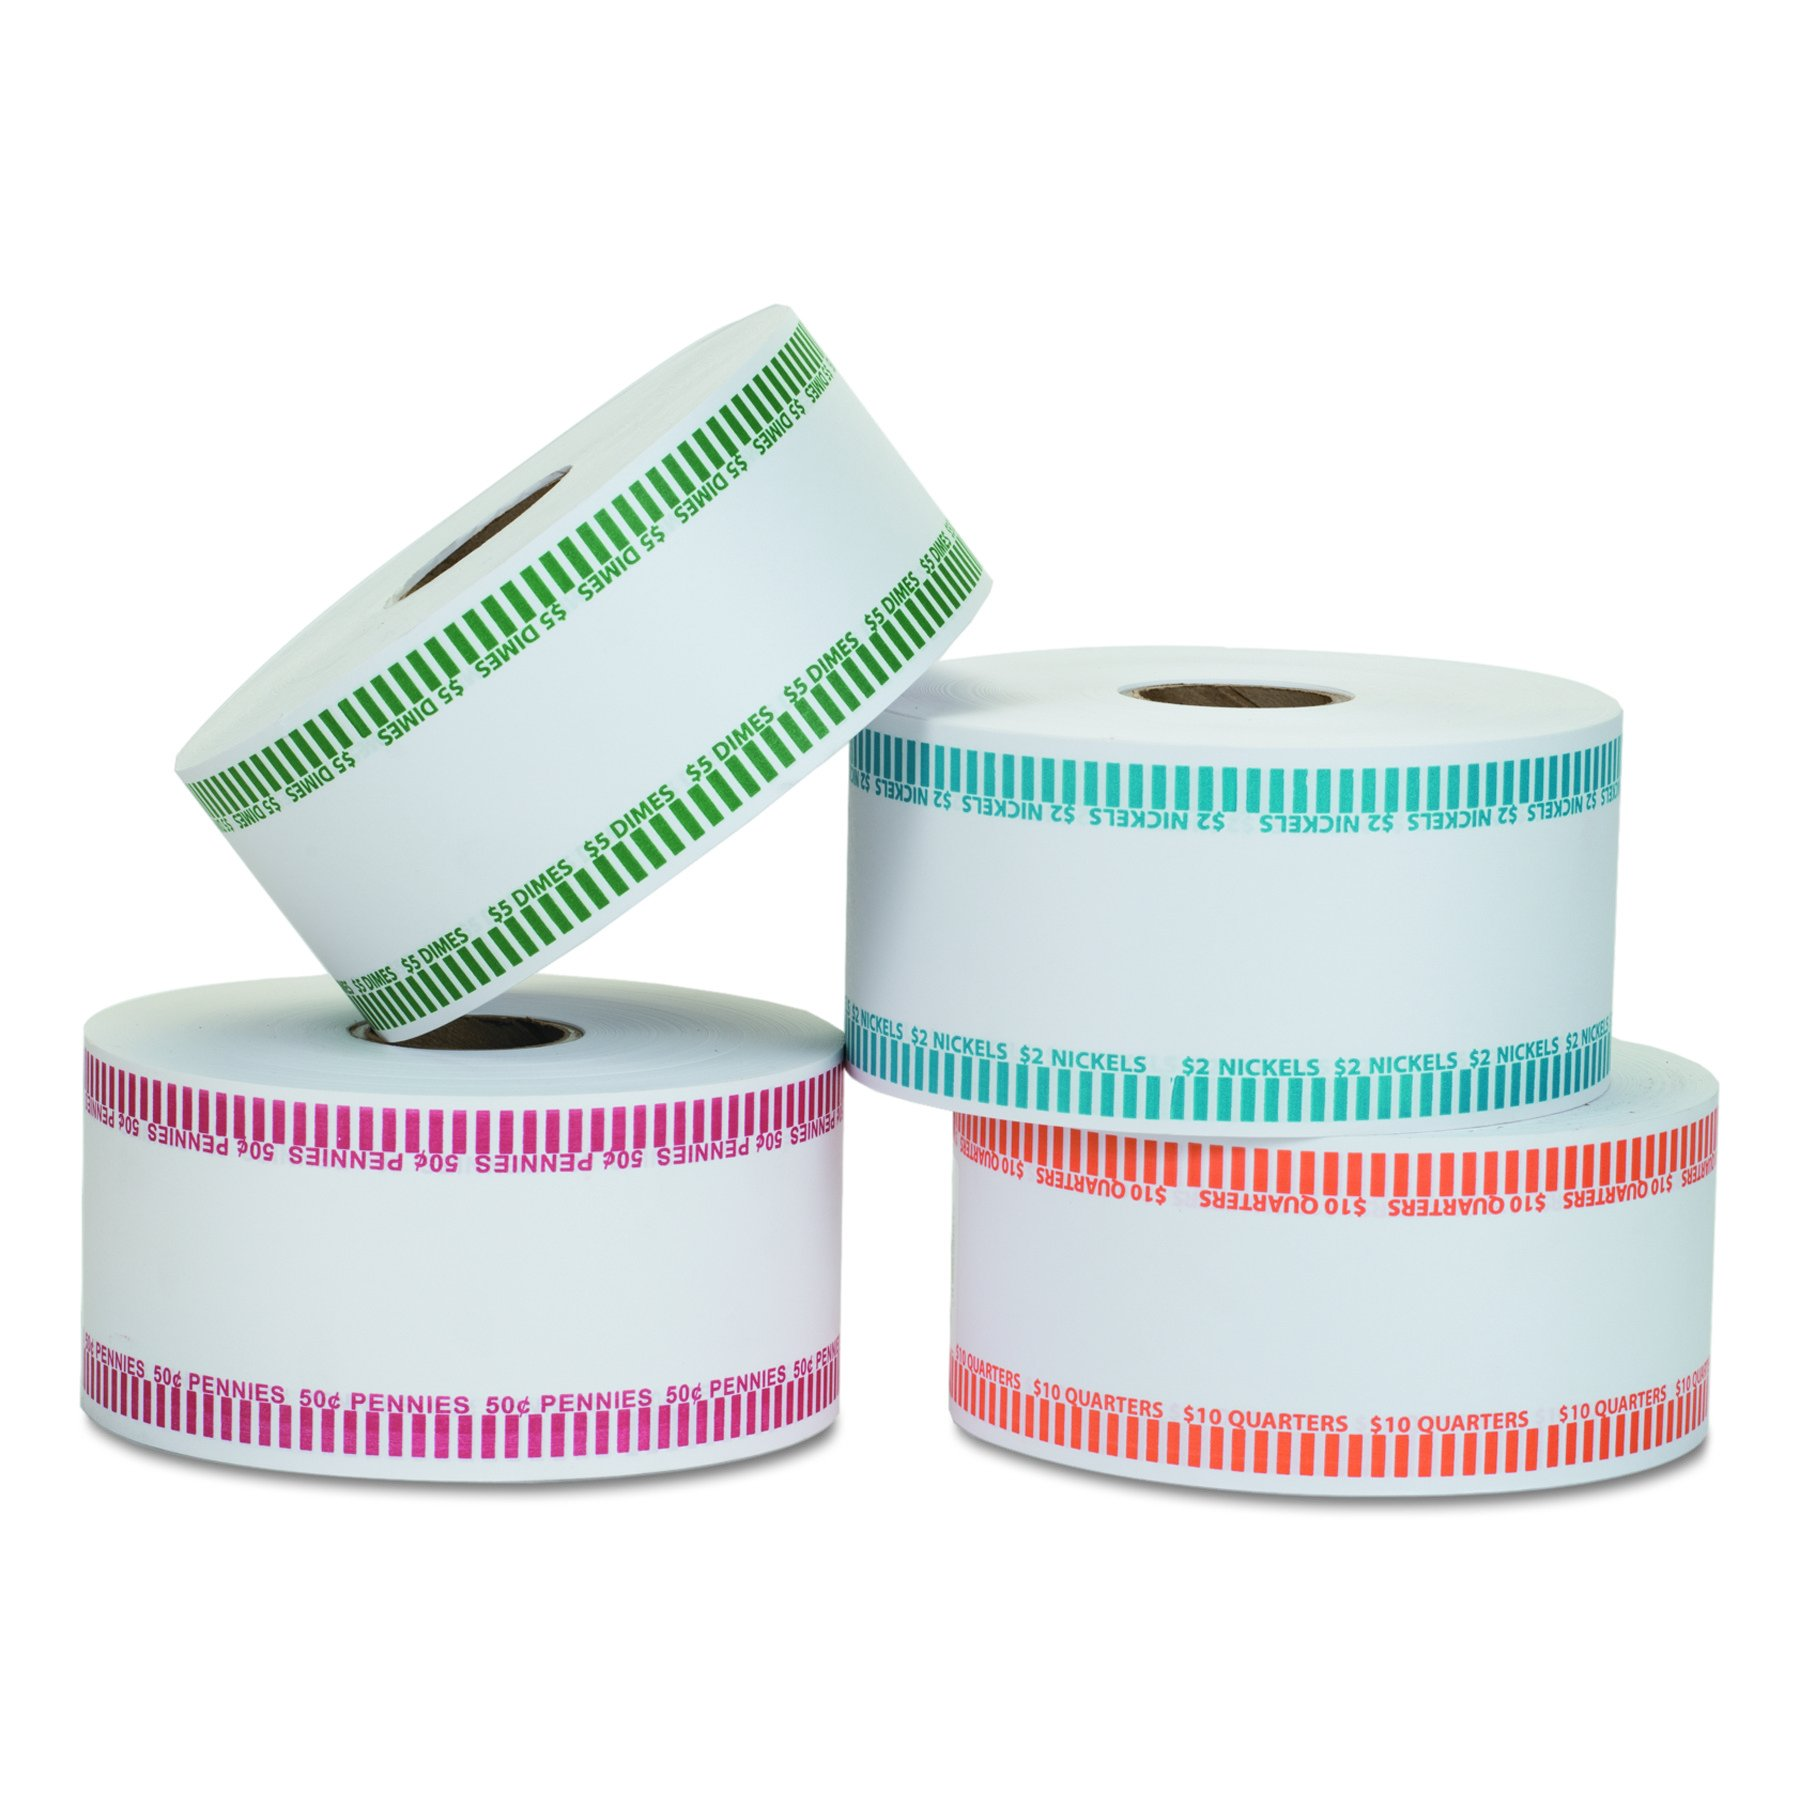 Coin-Tainer 50010 Automatic Coin Rolls, Dimes, 5, 1900 Wrappers per Roll by MMF Industries (Image #4)